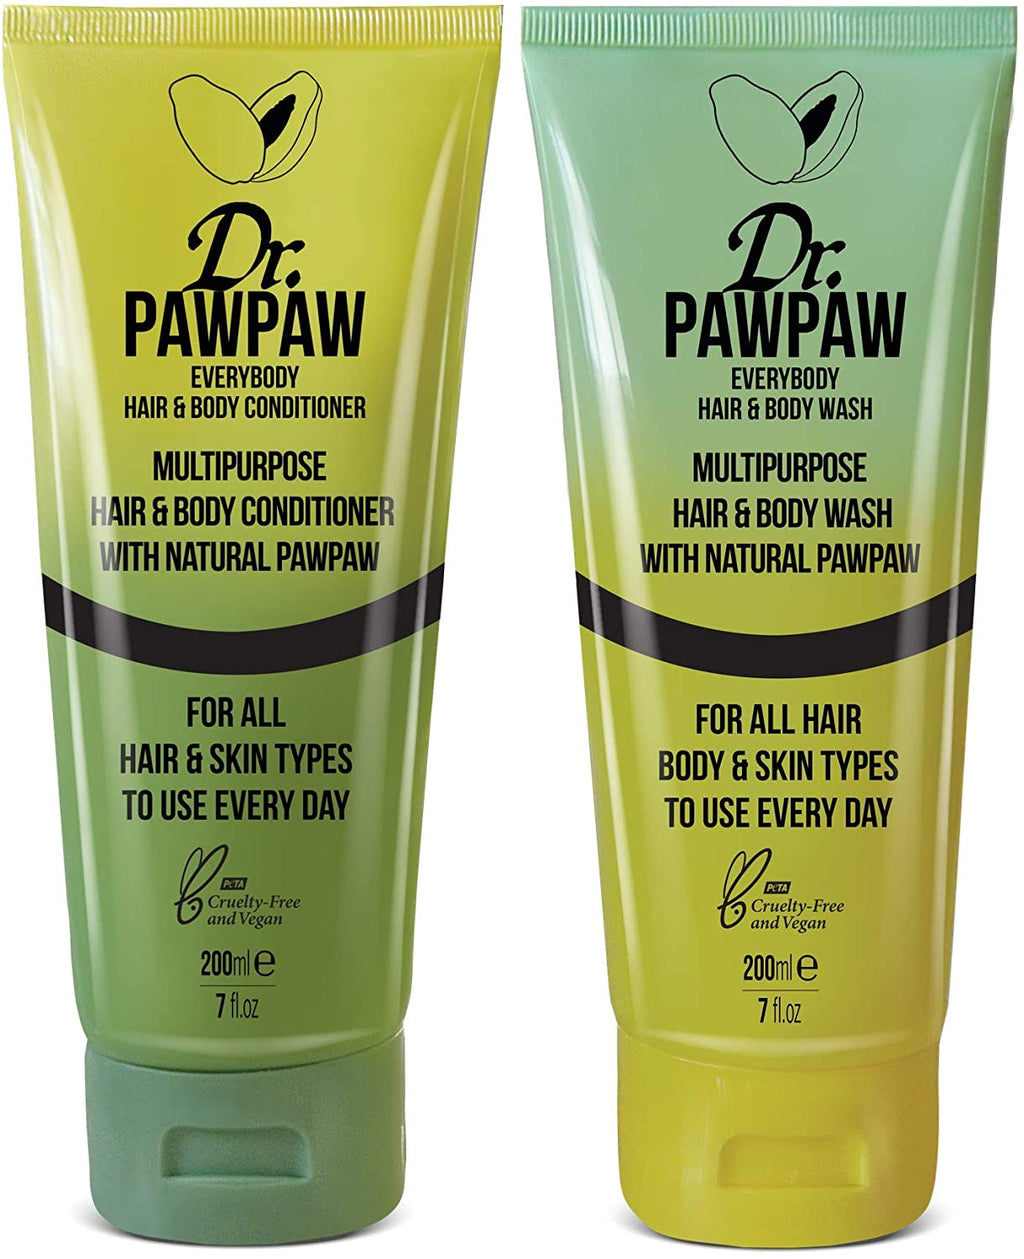 DR. PAWPAW - Multipurpose Hair & Body Wash 200ml